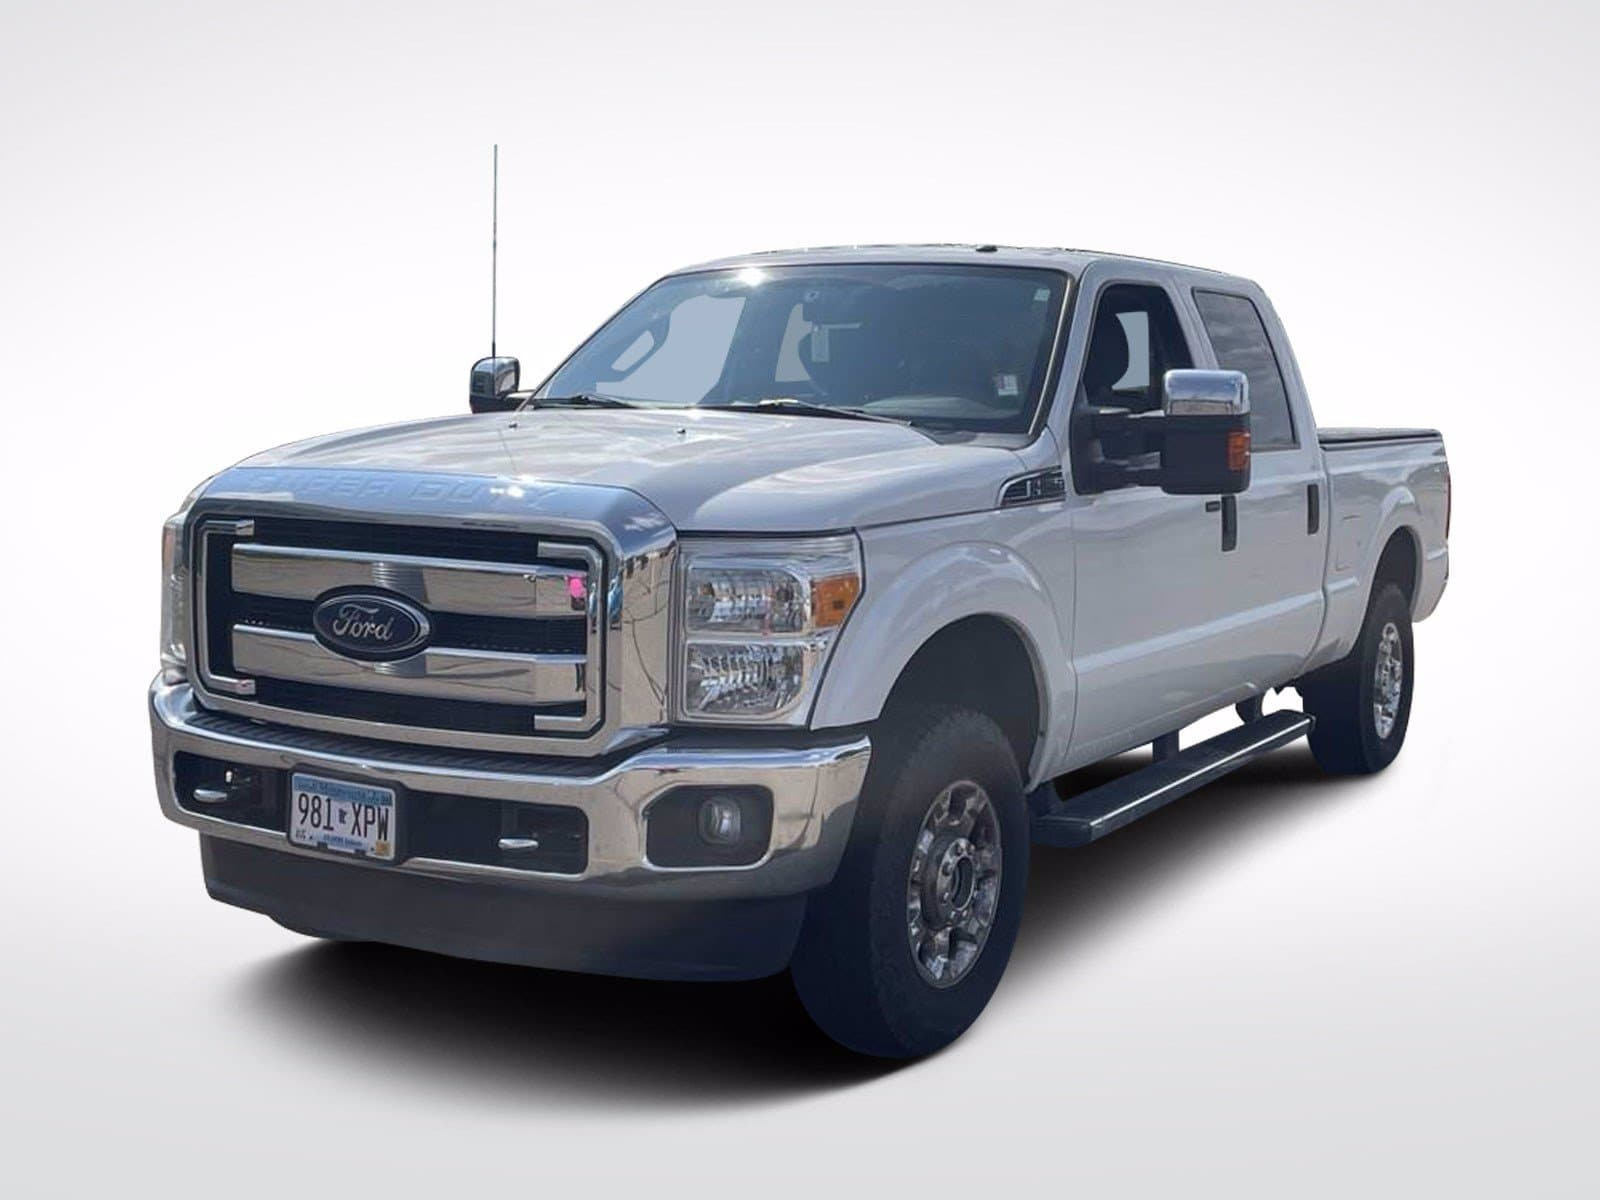 Used 2016 Ford F-250 Super Duty XLT with VIN 1FT7W2B69GEA49558 for sale in Baxter, Minnesota